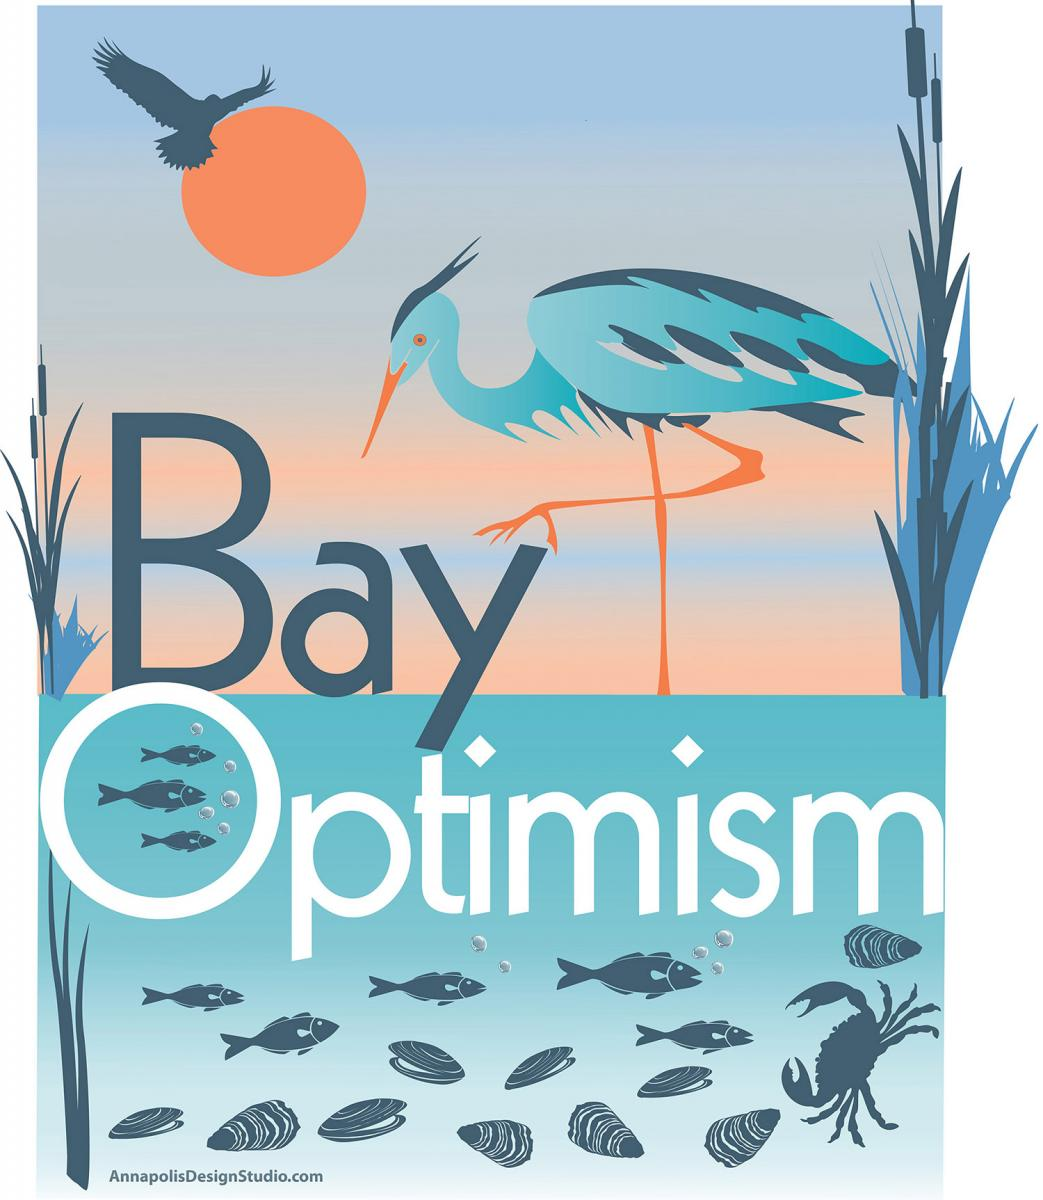 Bay Optimism logo with heron, fish and crabs